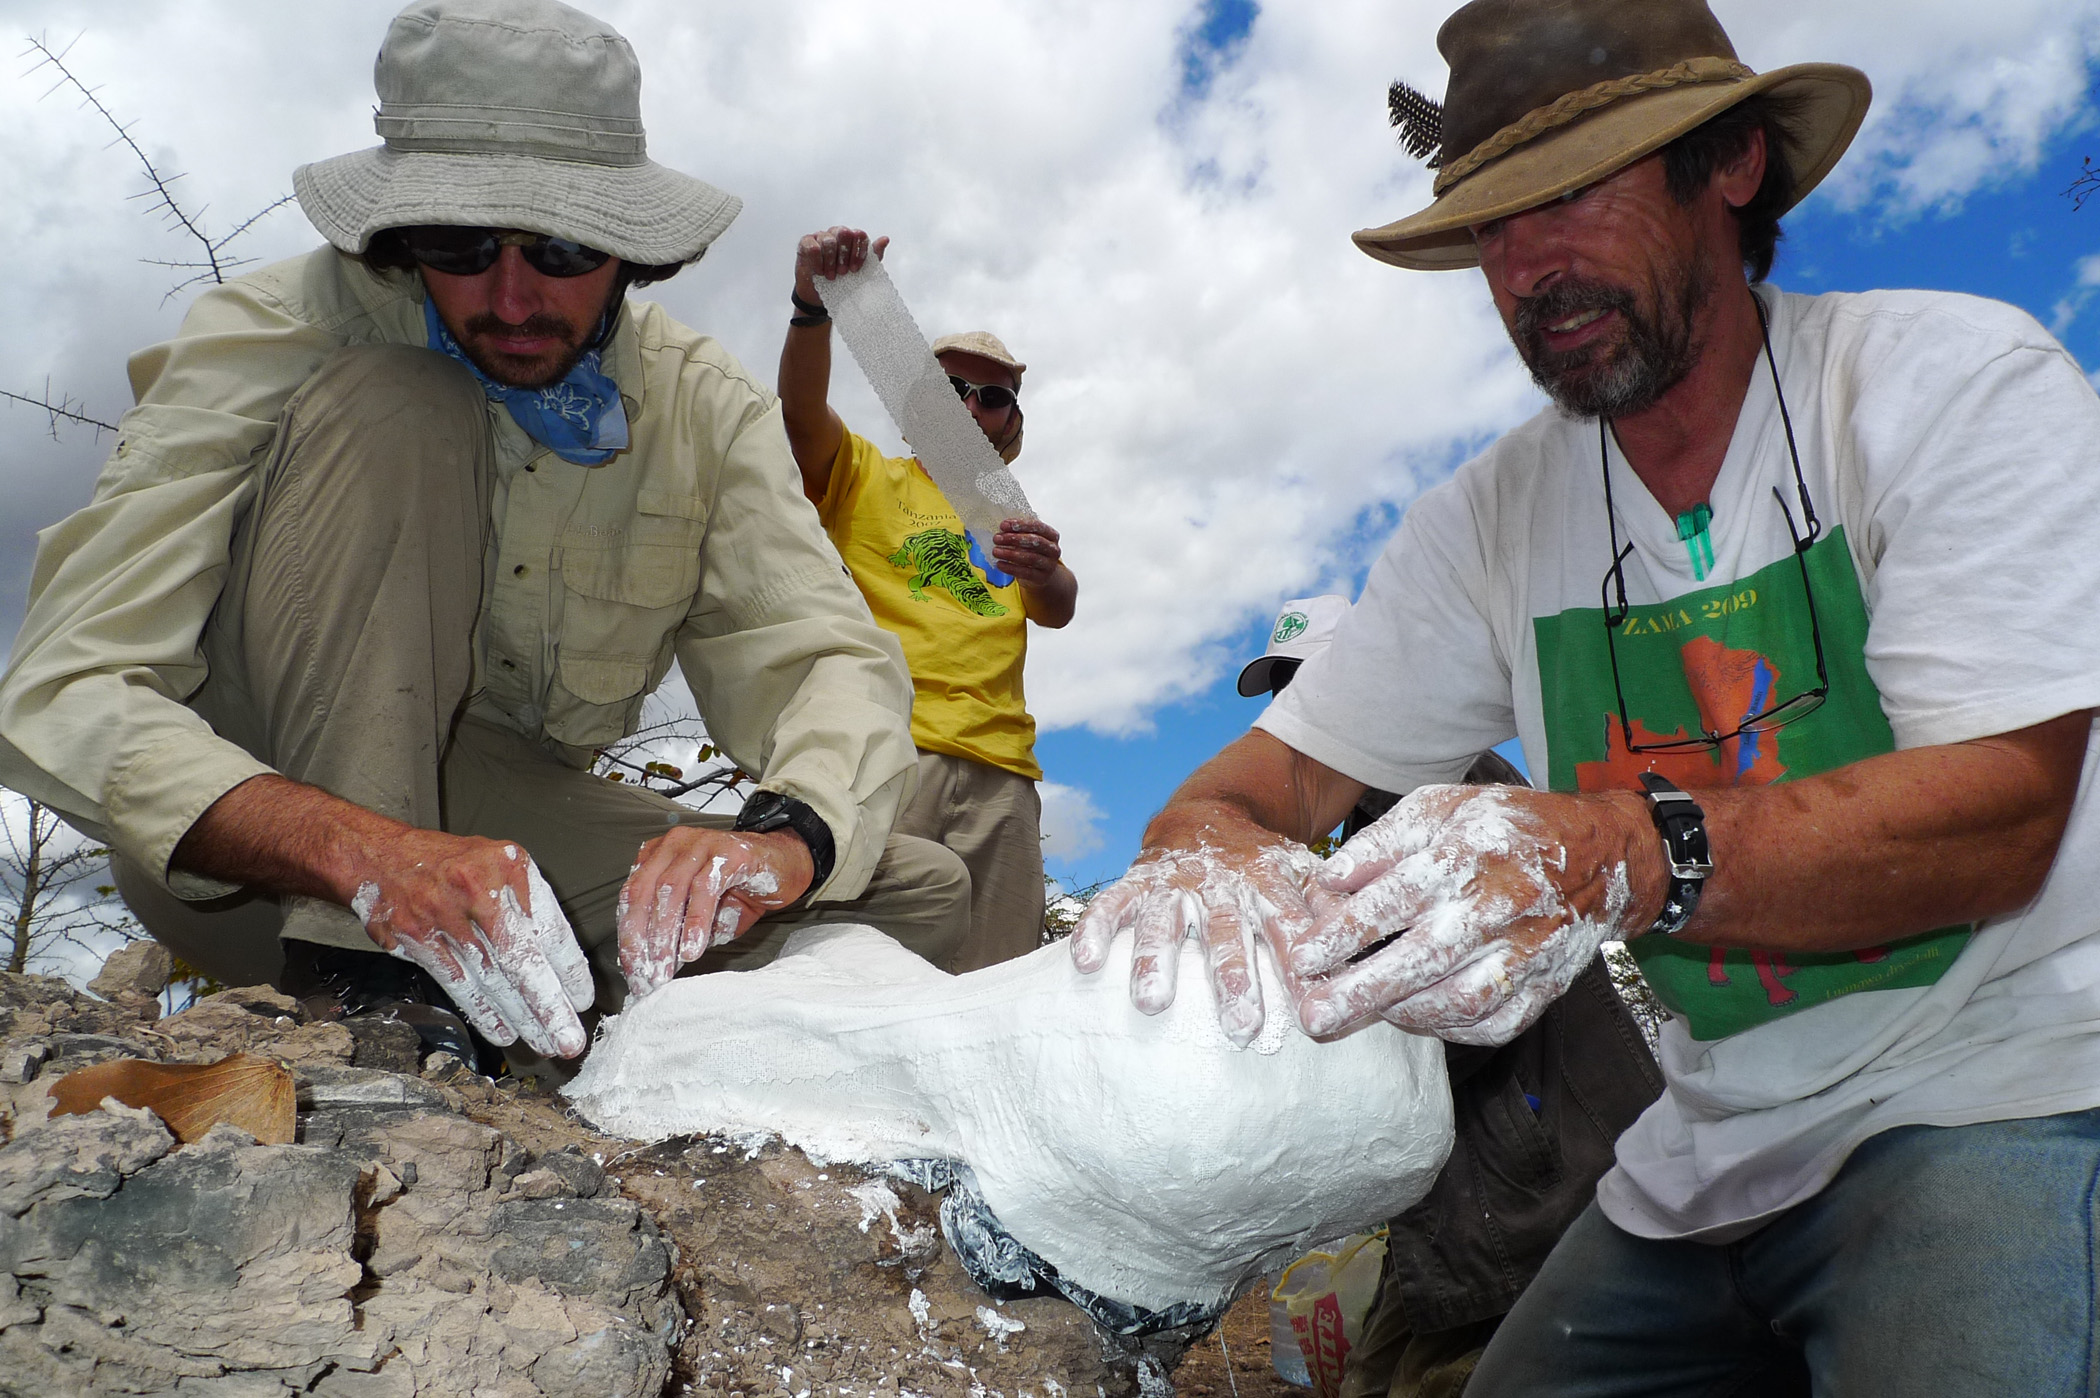 Three men create mold around fossiil sticking out of rock.